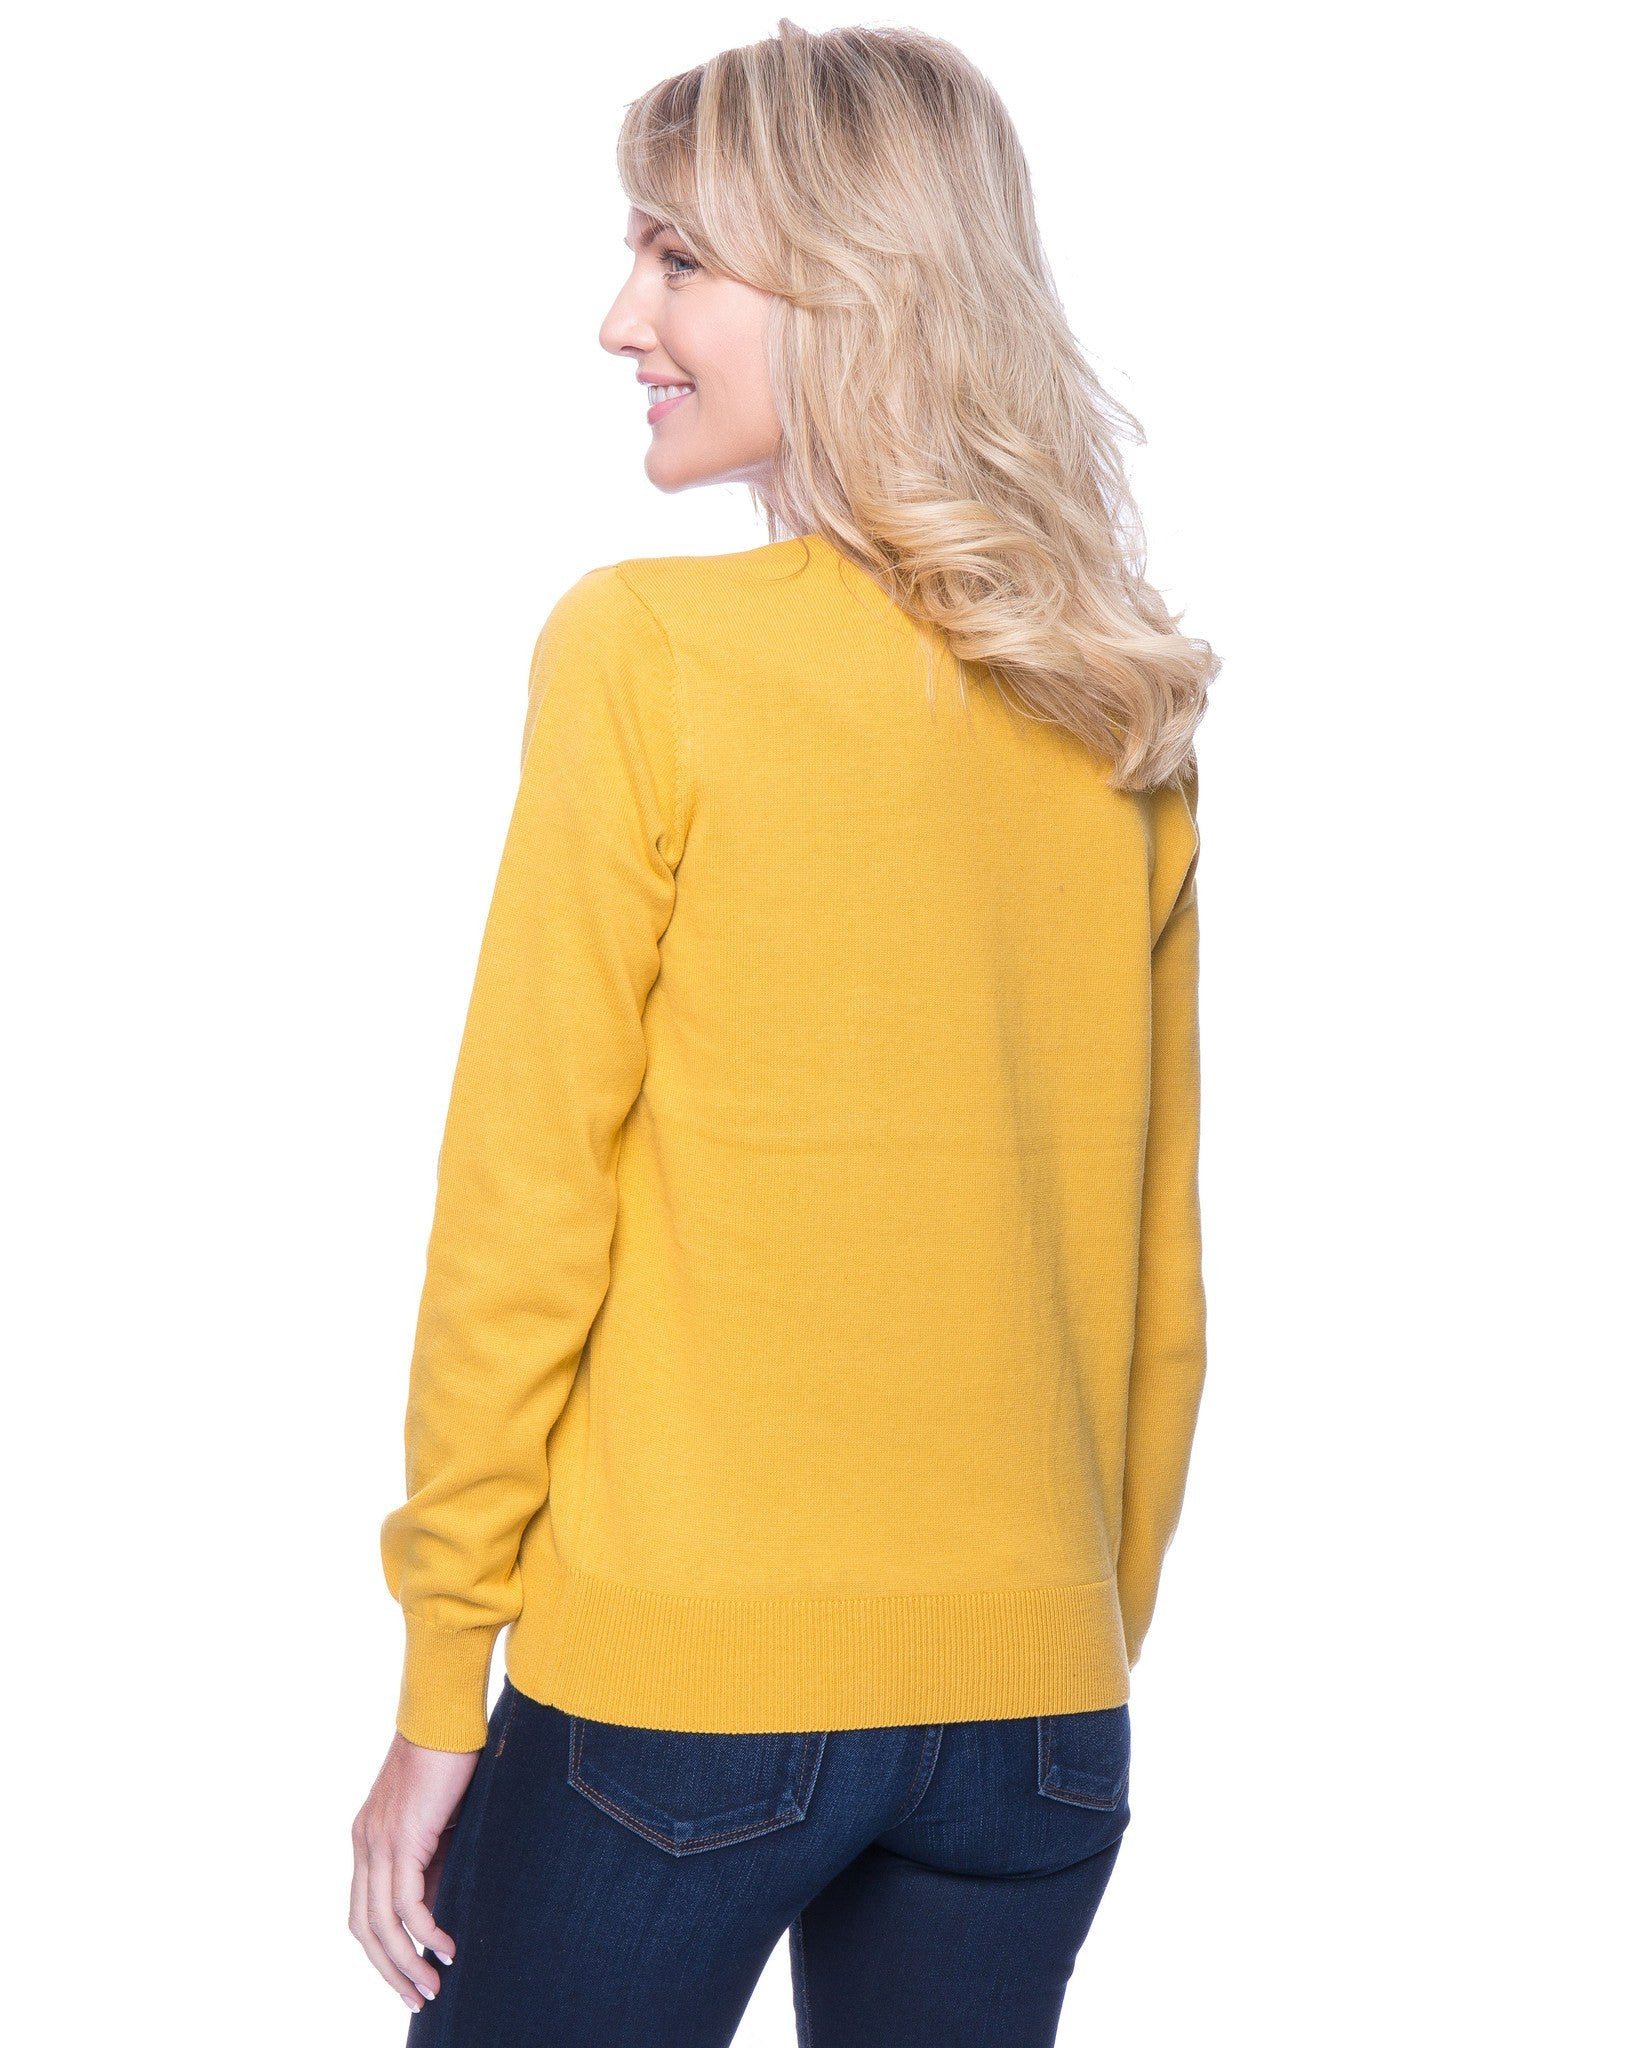 Tocco Reale Women's Premium Cotton Crew Neck Sweater - Mustard